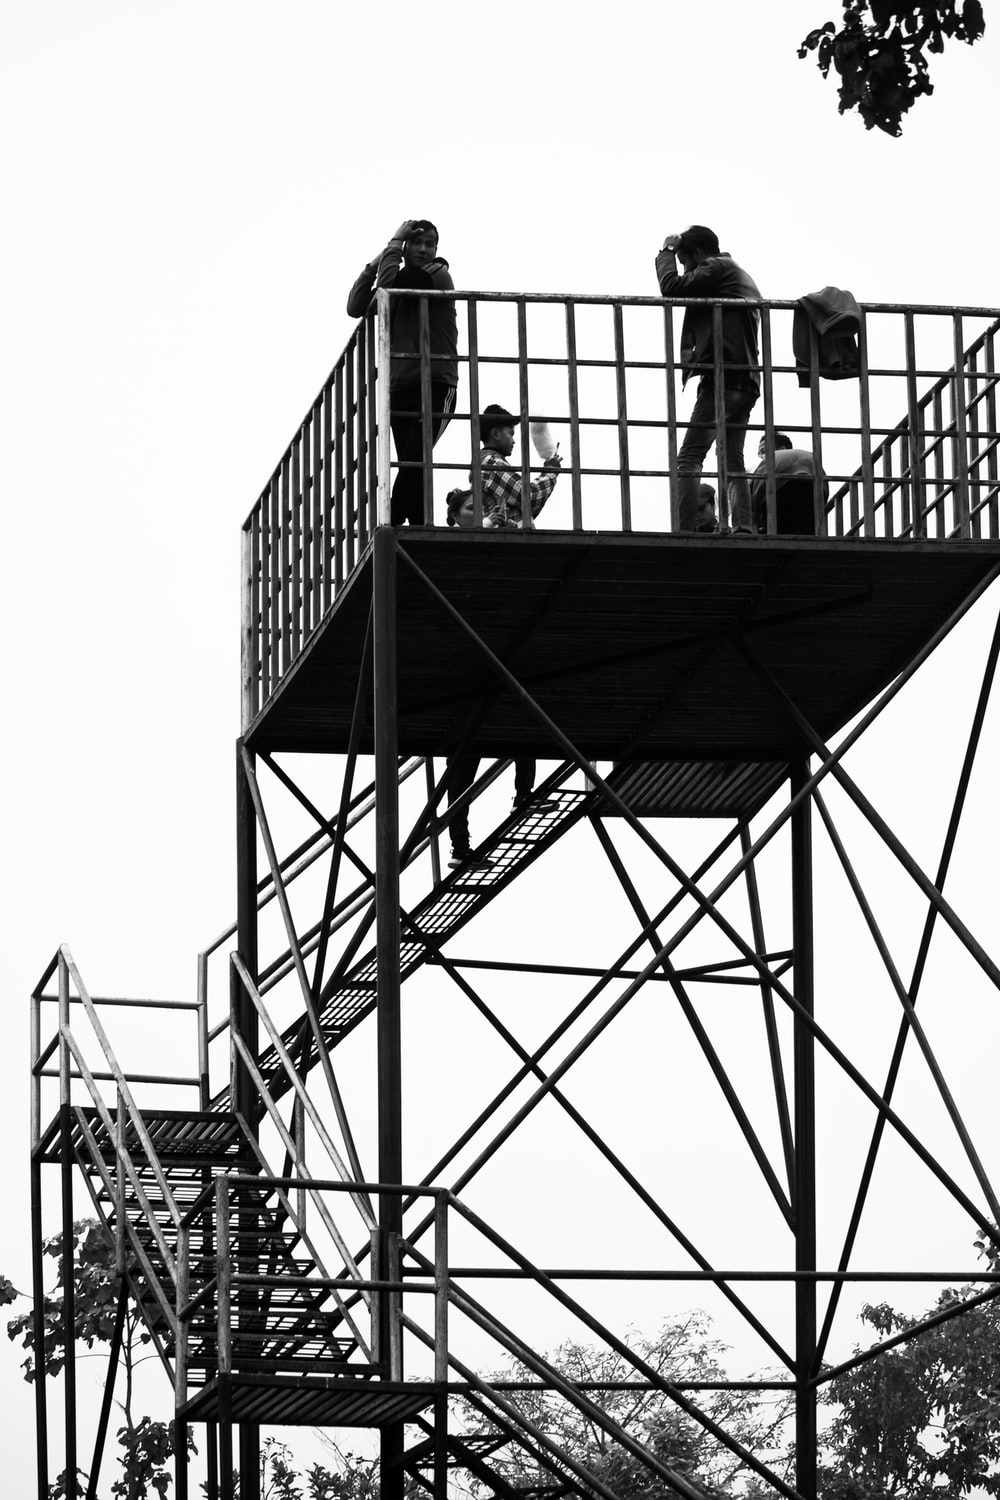 silhouette of people on top of building